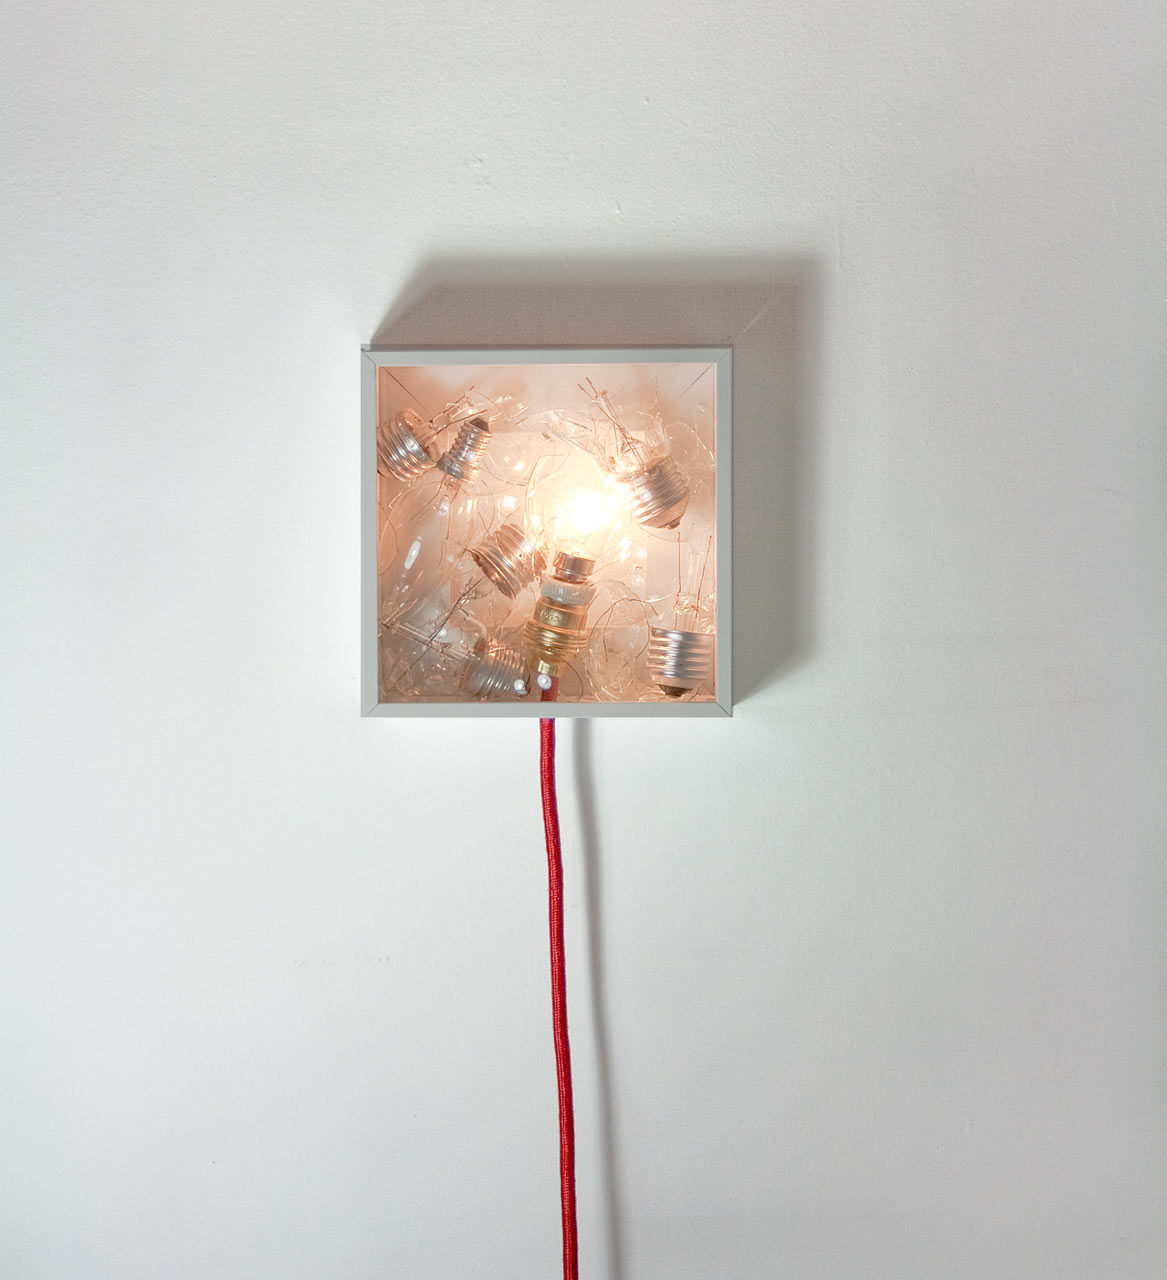 Bulbbox Lamp Made With A Box Of Bulbs